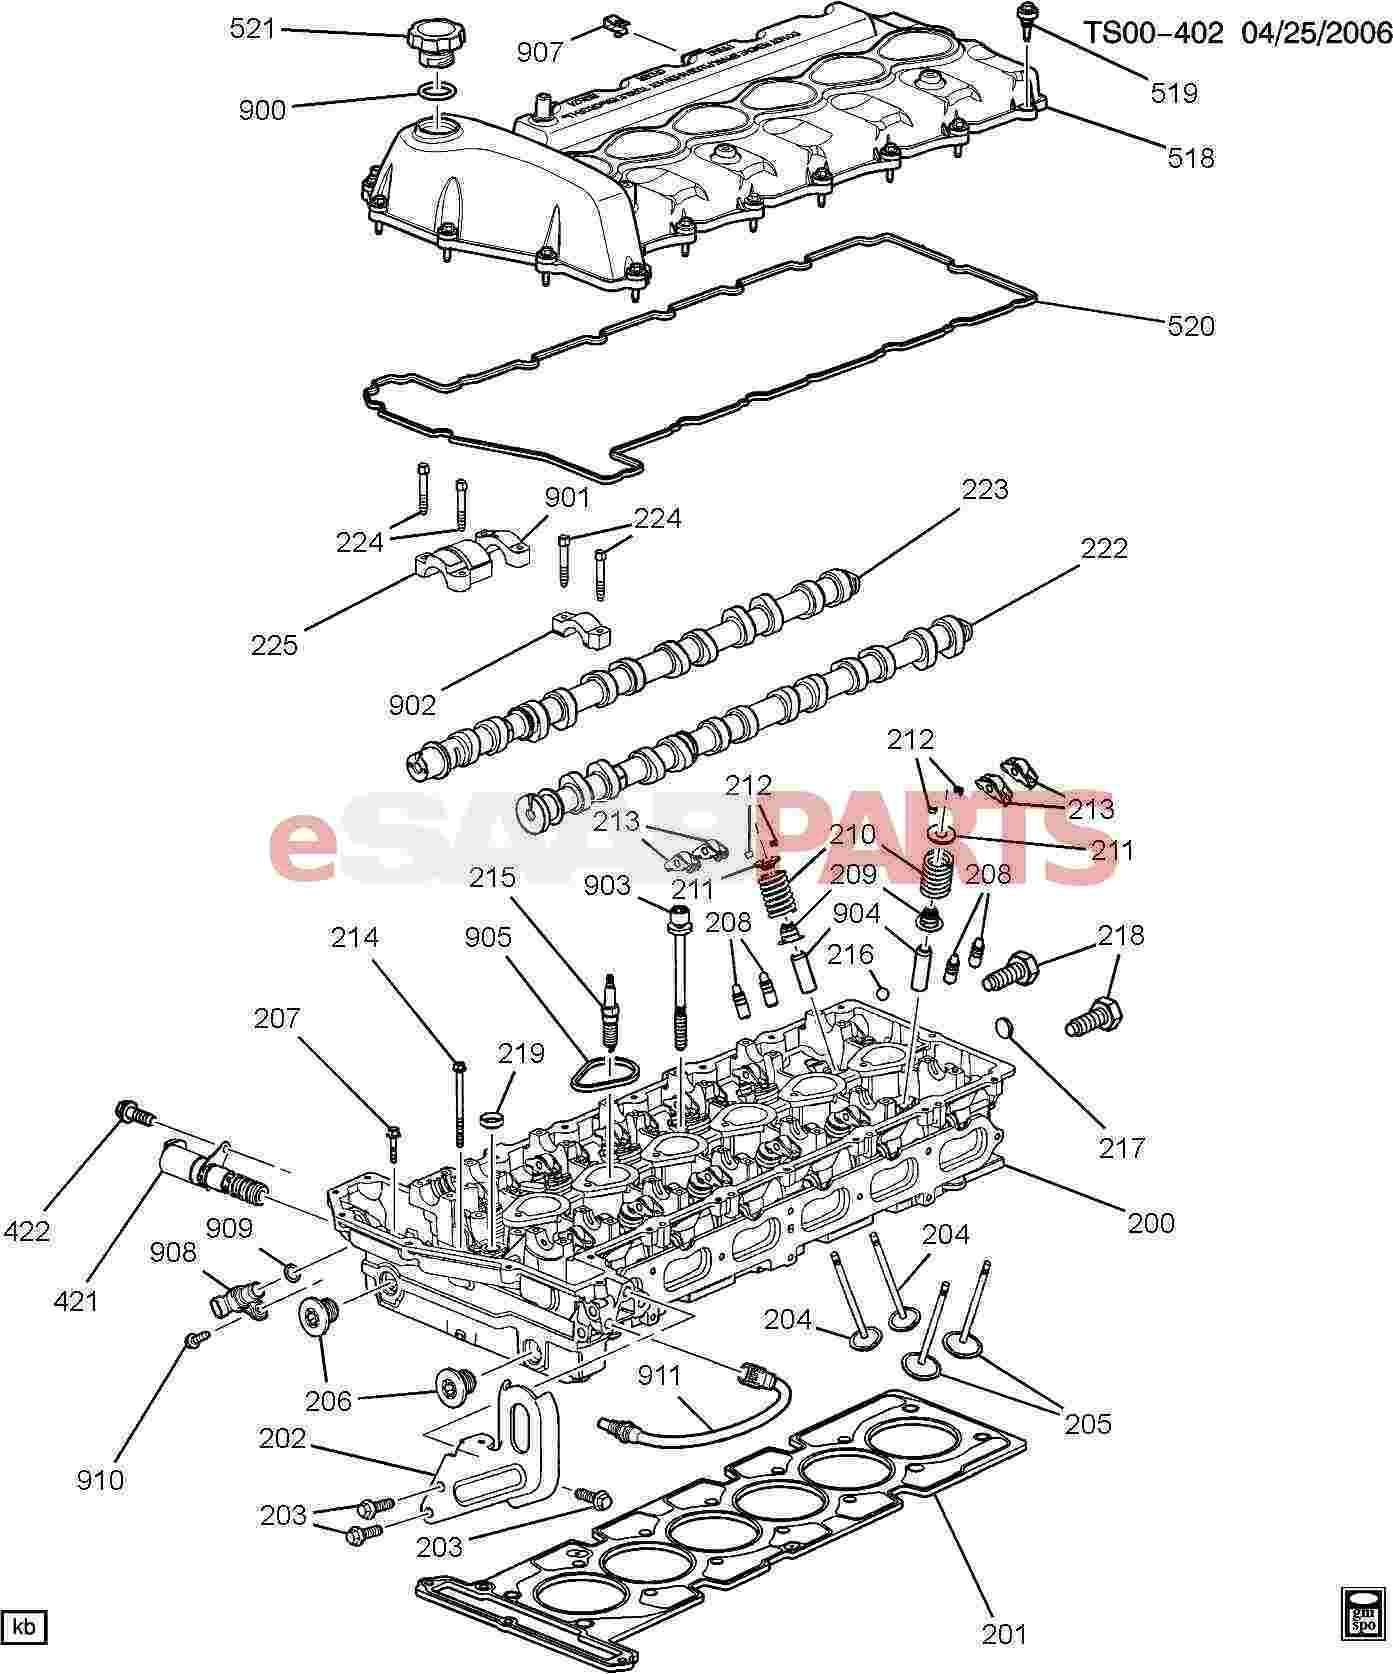 Engine Parts Diagram with Names ] Saab Bolt Hfh M6x1x20 17 9 Thd 14 2 O D 9 8 Tin Zn Of Engine Parts Diagram with Names